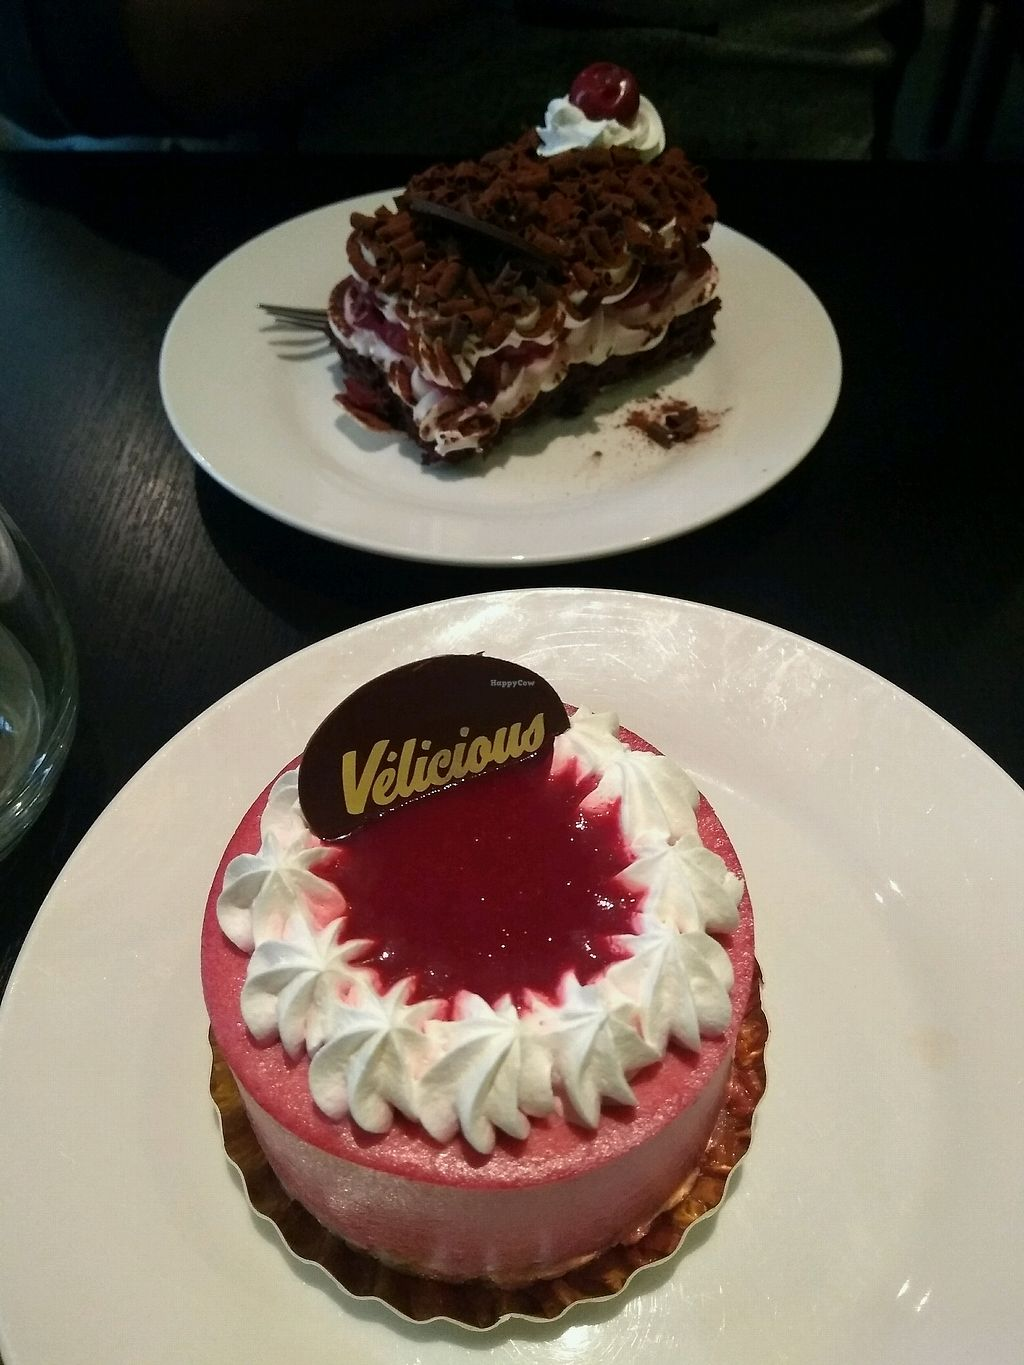 "Photo of Velicious  by <a href=""/members/profile/ArySimieli"">ArySimieli</a> <br/>Delicious! <br/> March 10, 2018  - <a href='/contact/abuse/image/64013/368900'>Report</a>"